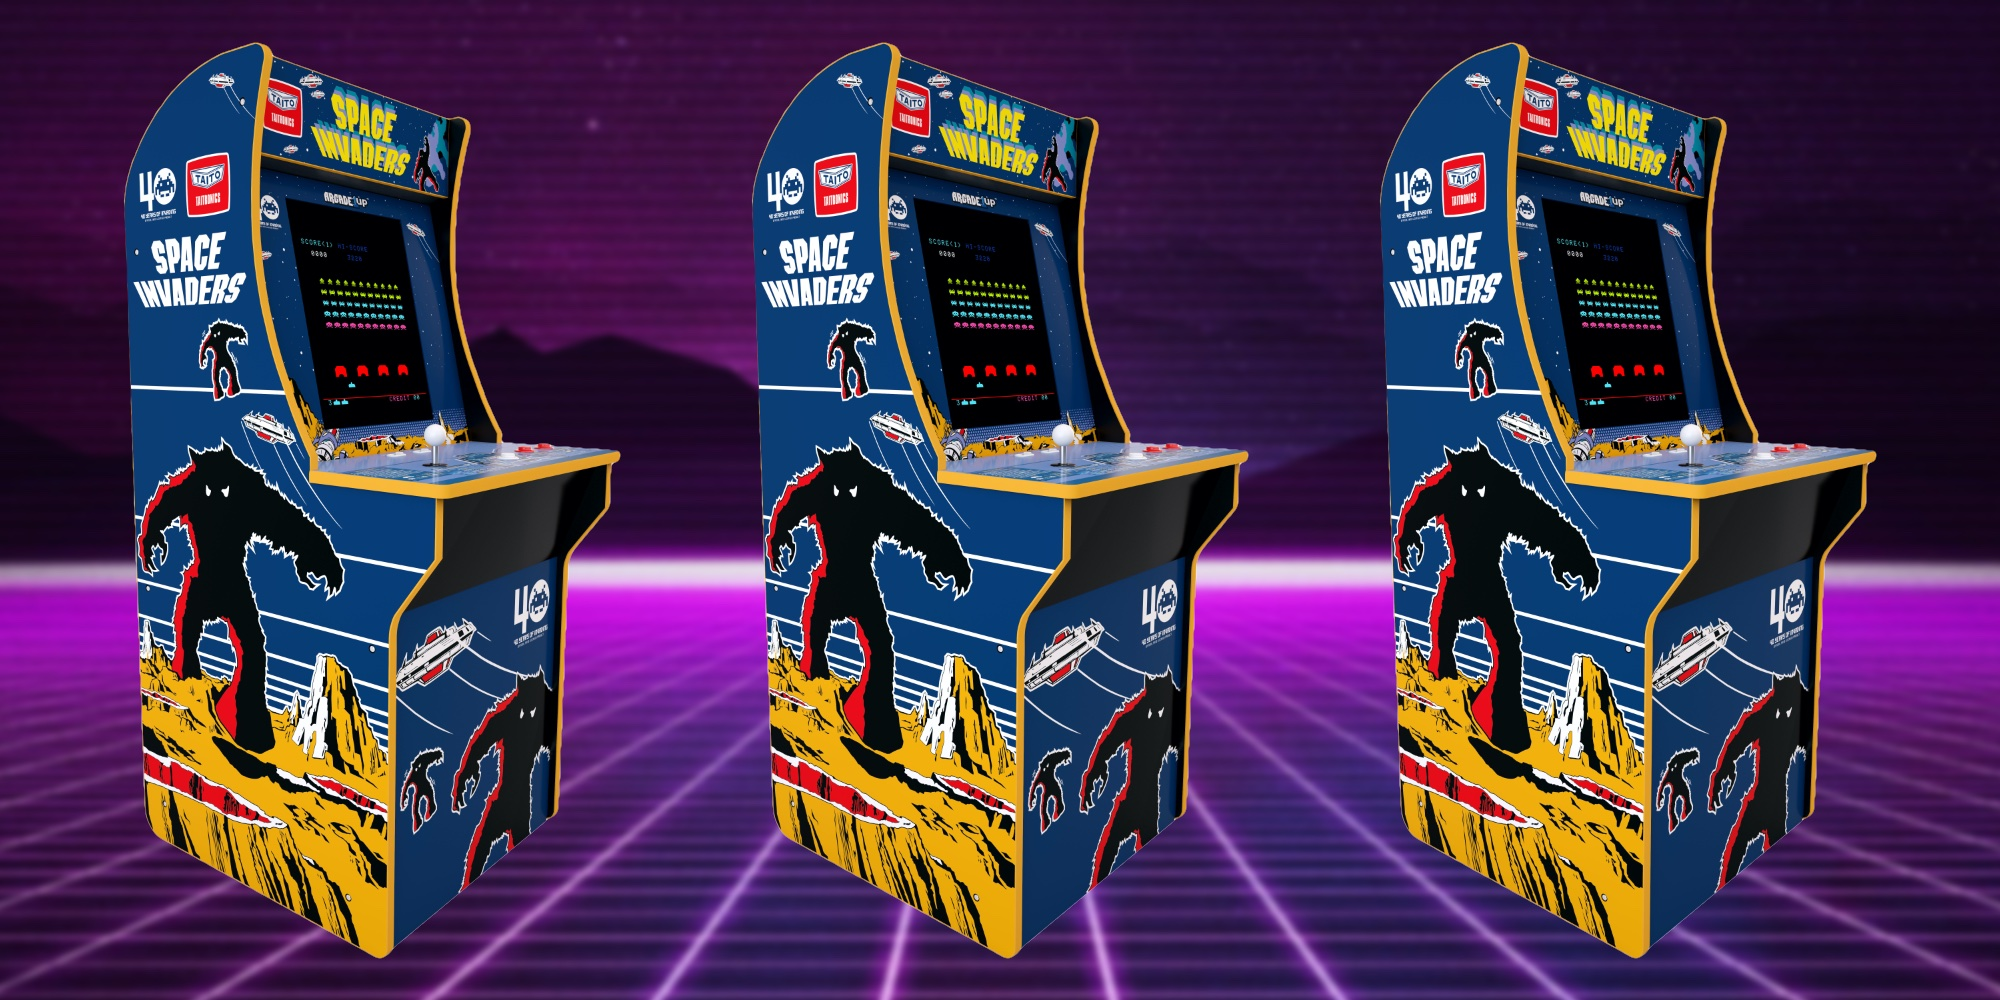 Arcade1up Space Invaders Cabinet Drops To 150 At Walmart 9to5toys